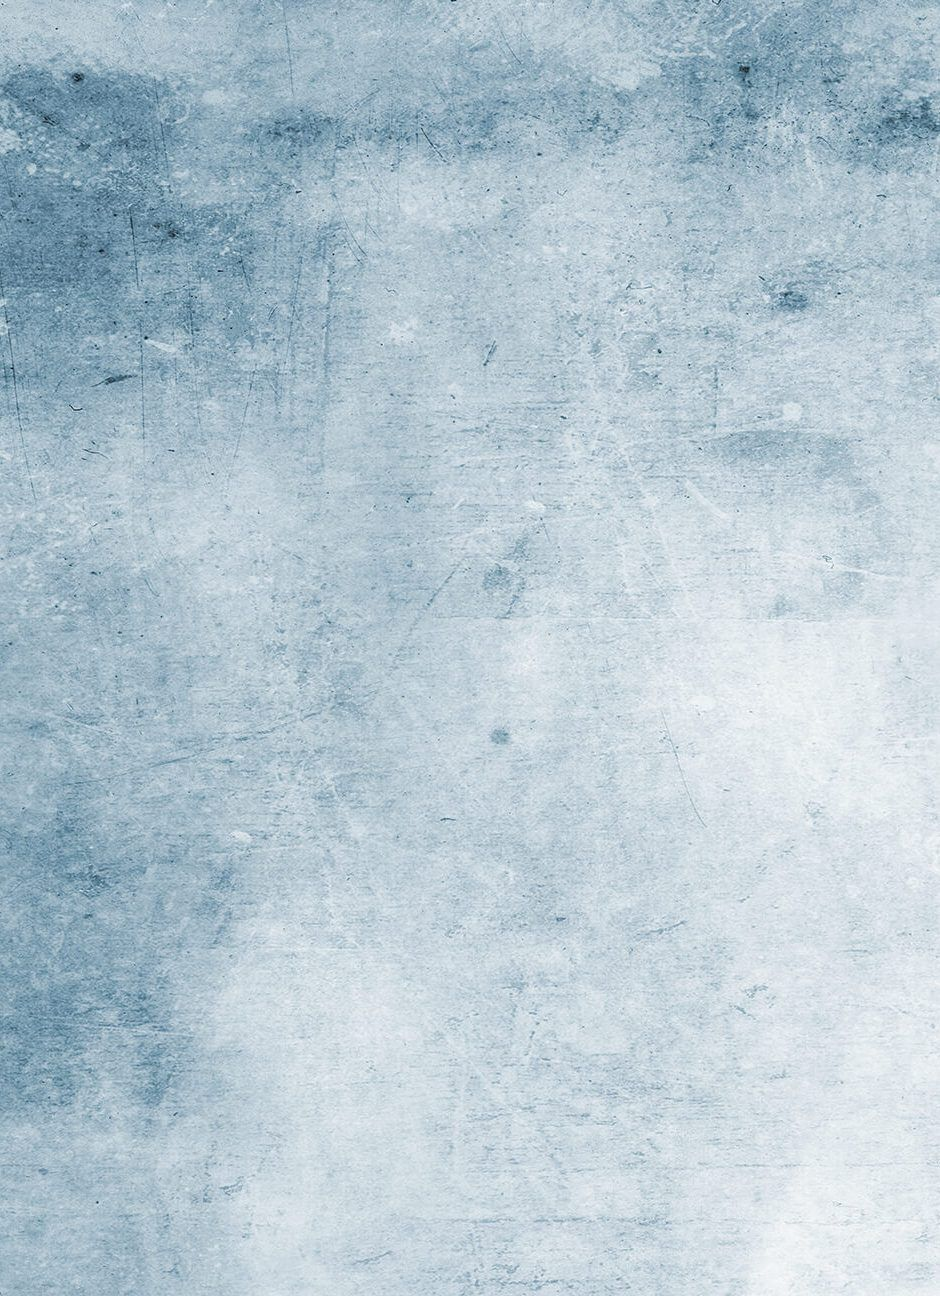 Grey Grunge Watercolor Wall Mural Textured Wallpaper Blue Grey